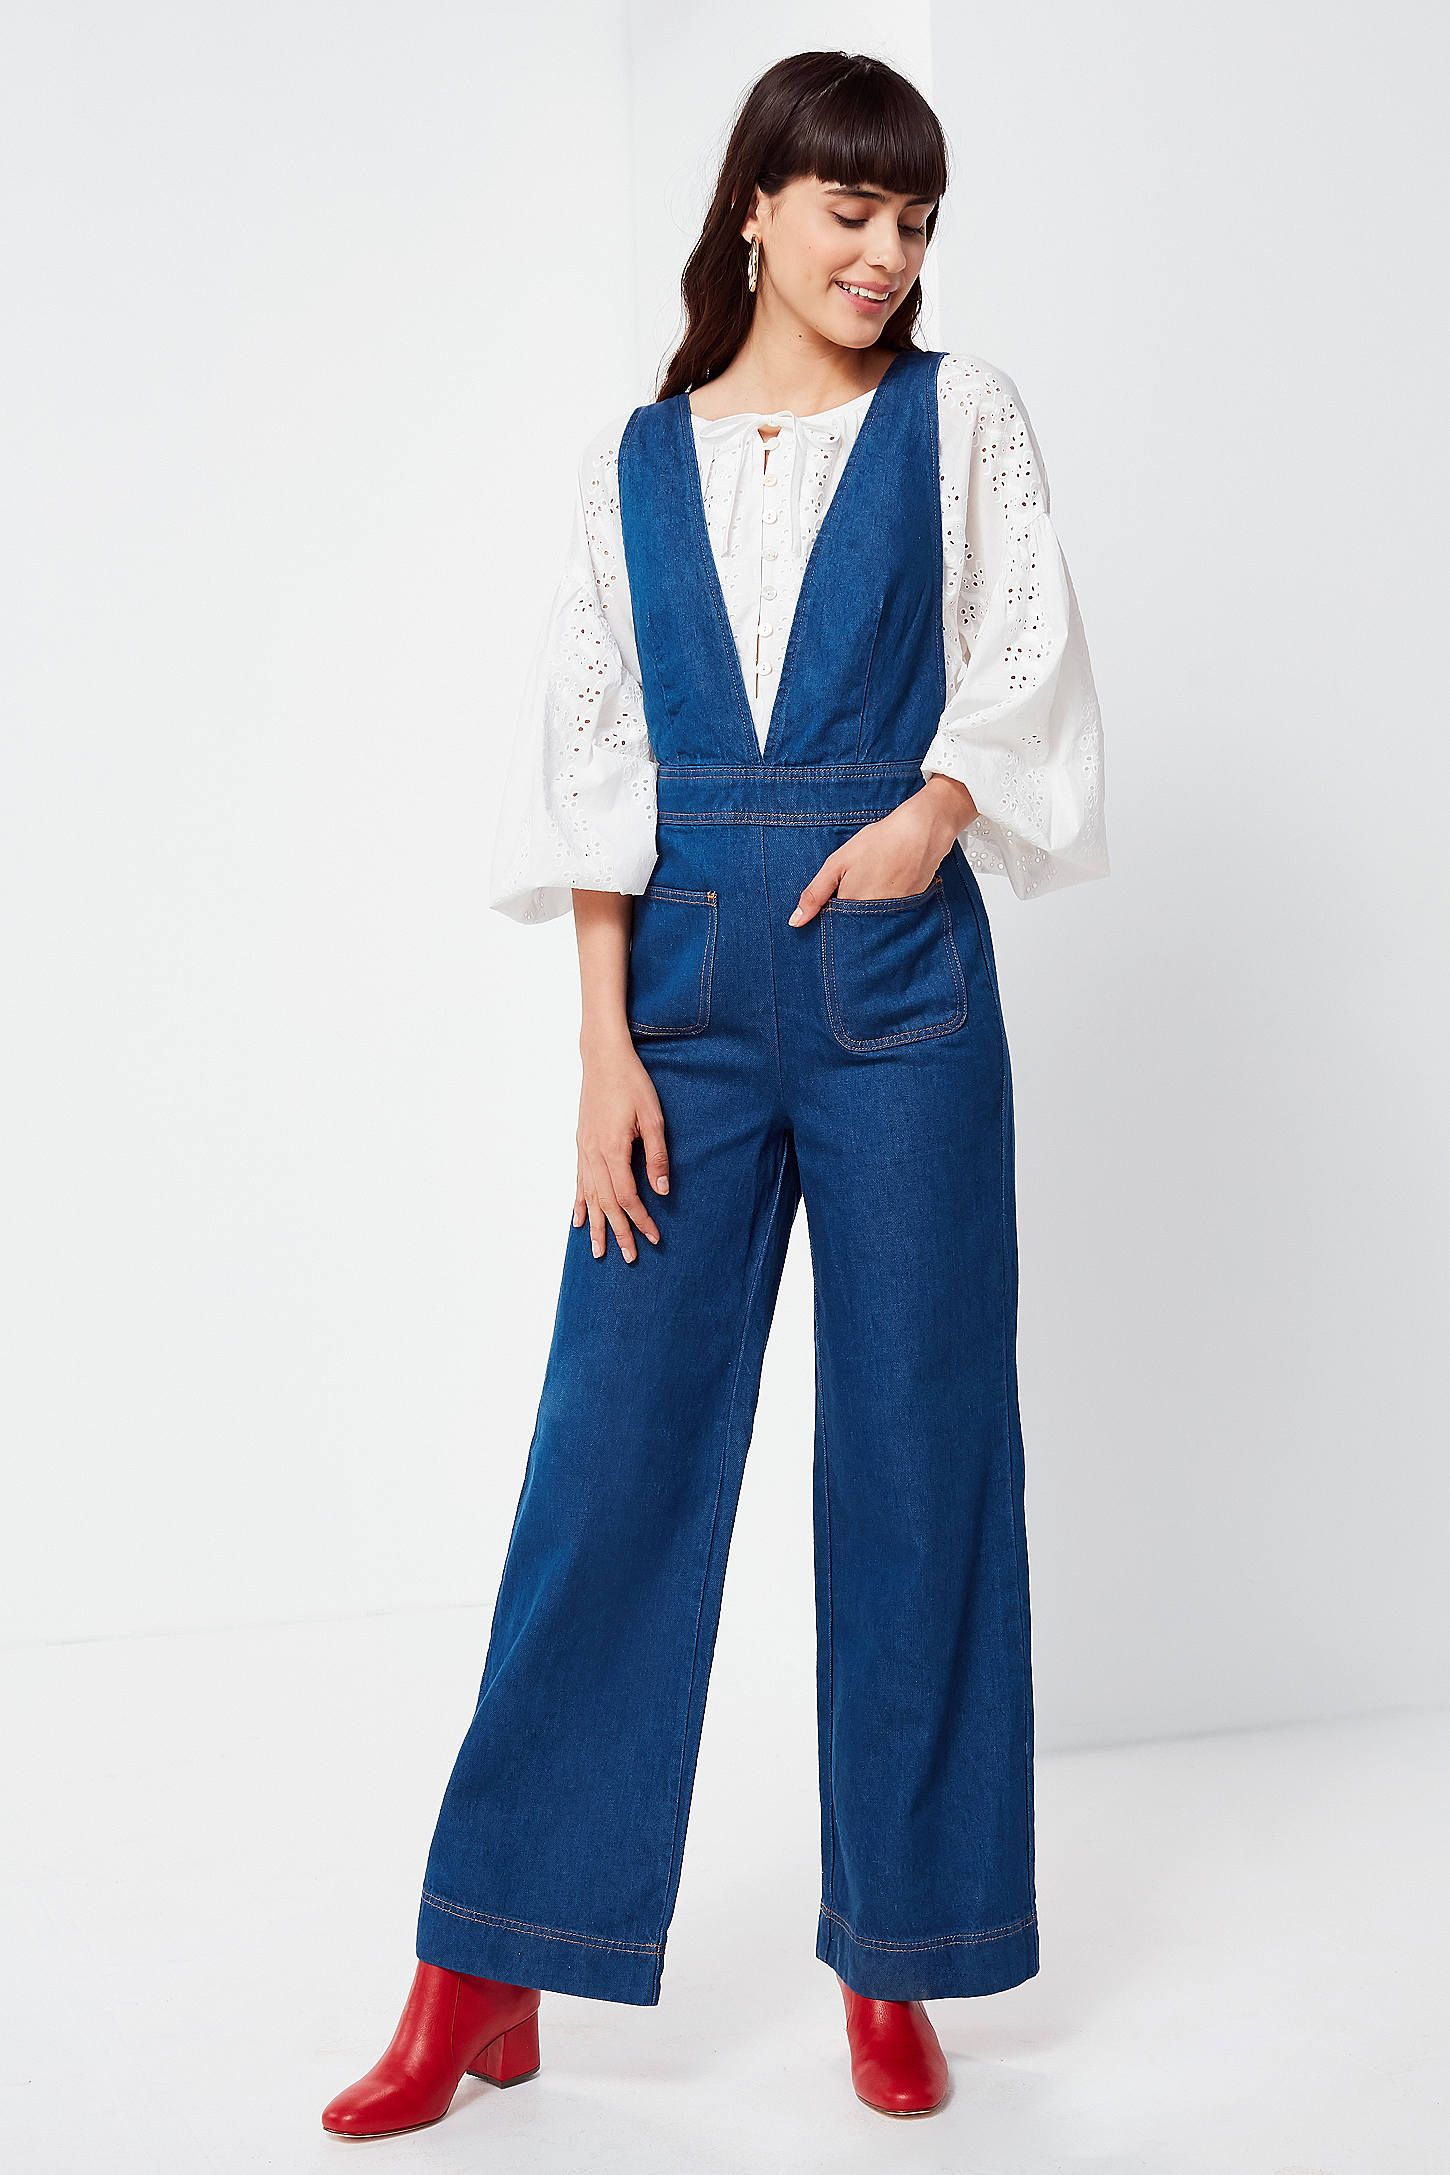 9a984bf7f64 Shop UO Eleanor Plunging Denim Jumpsuit at Urban Outfitters today. We carry  all the latest styles